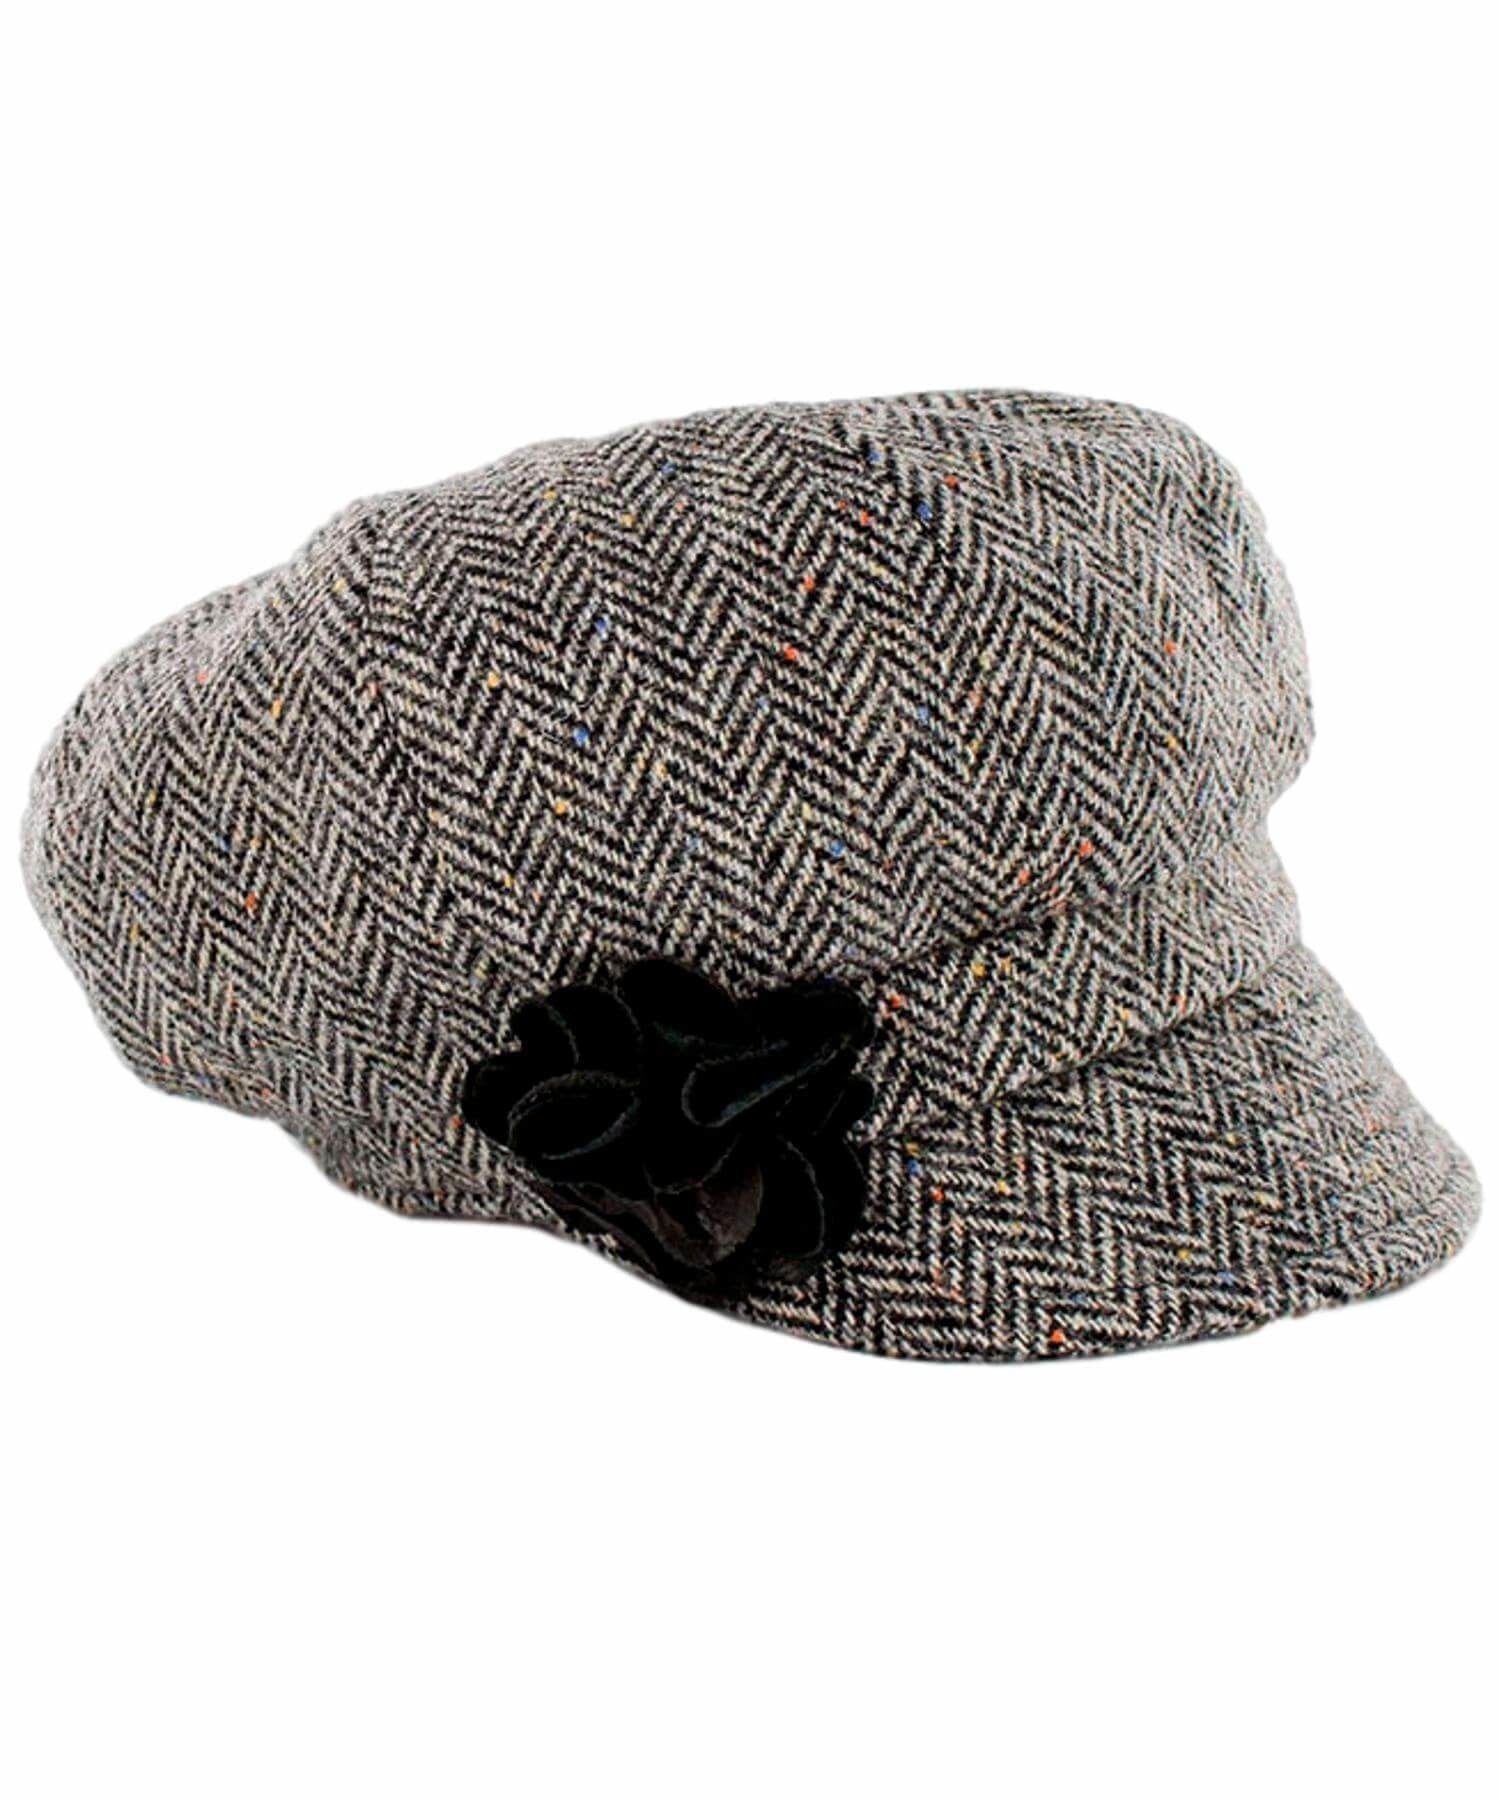 Newsboy Hat - Charcoal Fleck - [Mucros Weavers] - Ladies Hats & Headbands - Irish Gifts